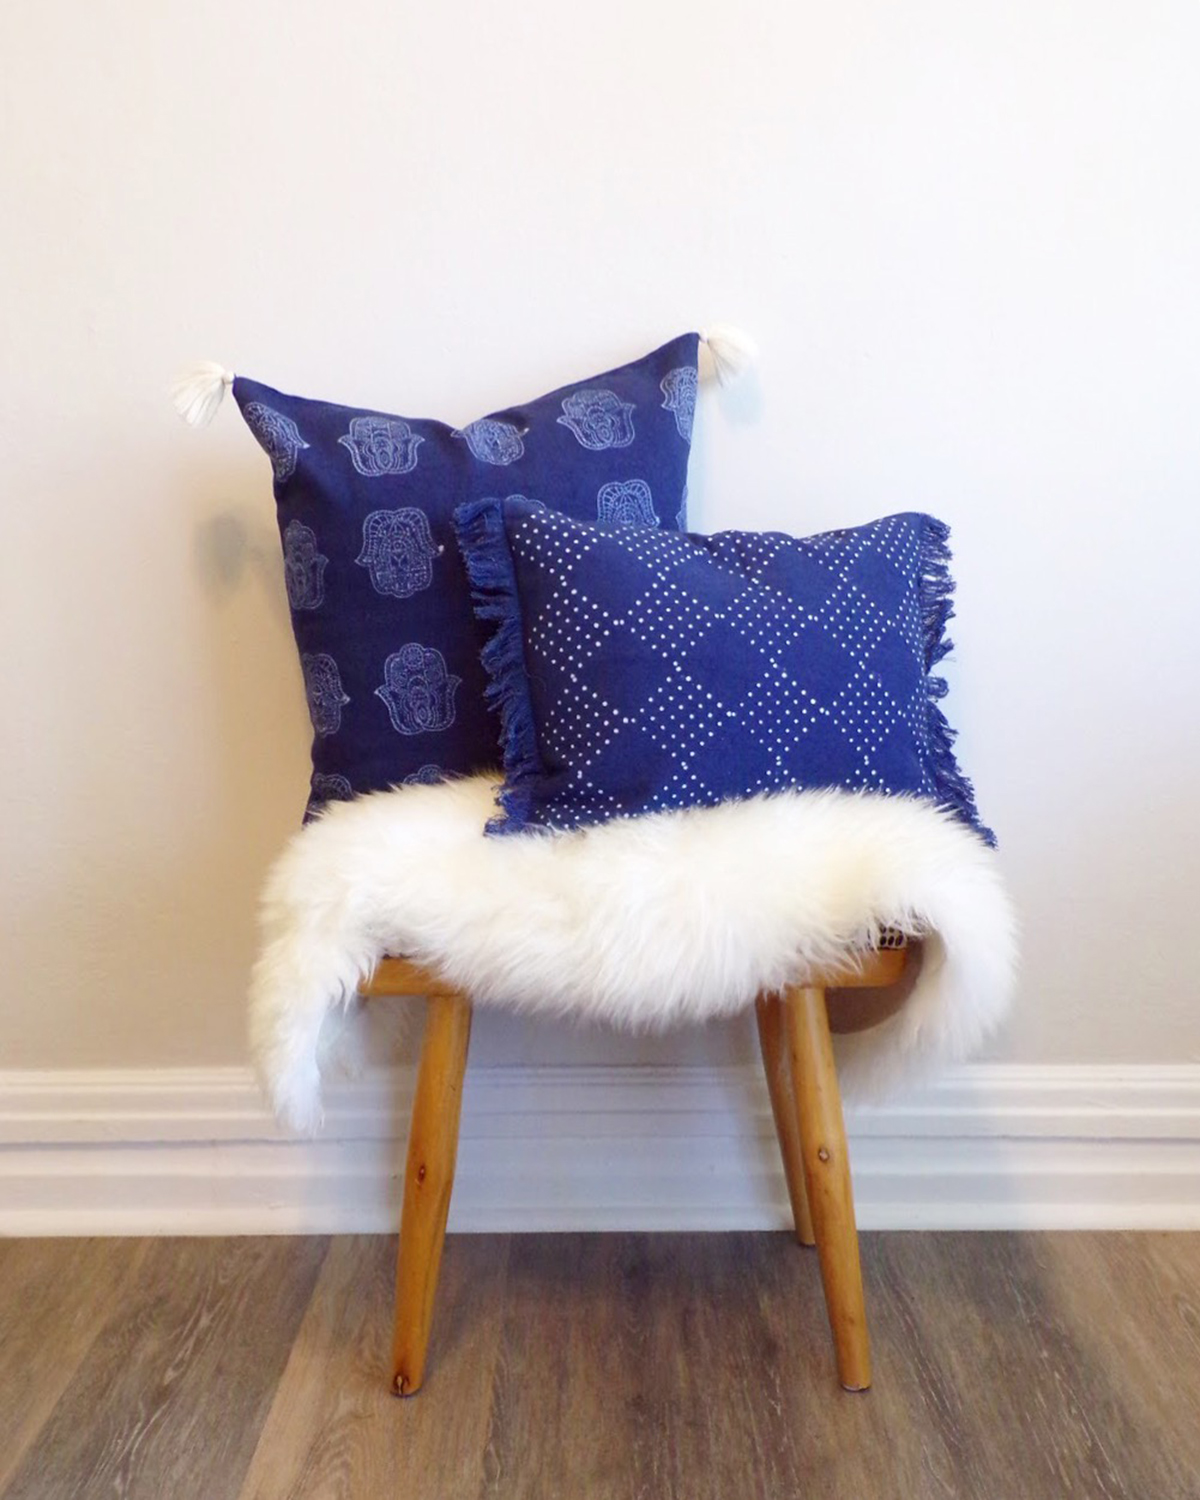 Shot of two pillows with blue pillow cases sitting on a throw and stool. Pillows are covered with Chelsea's design